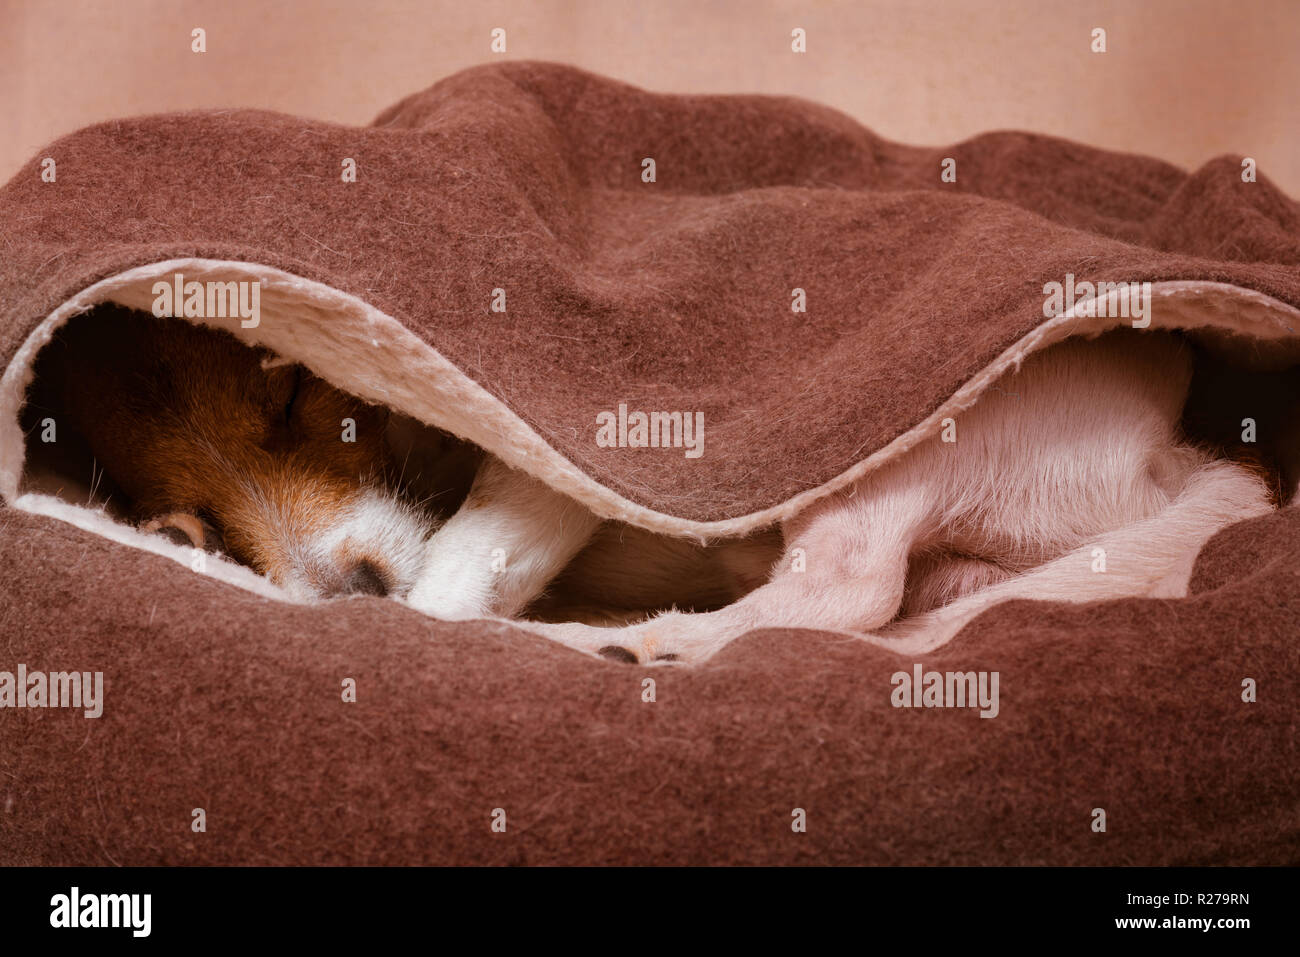 Cute domestic dog sleeps inside cozy hooded pet bed - Stock Image